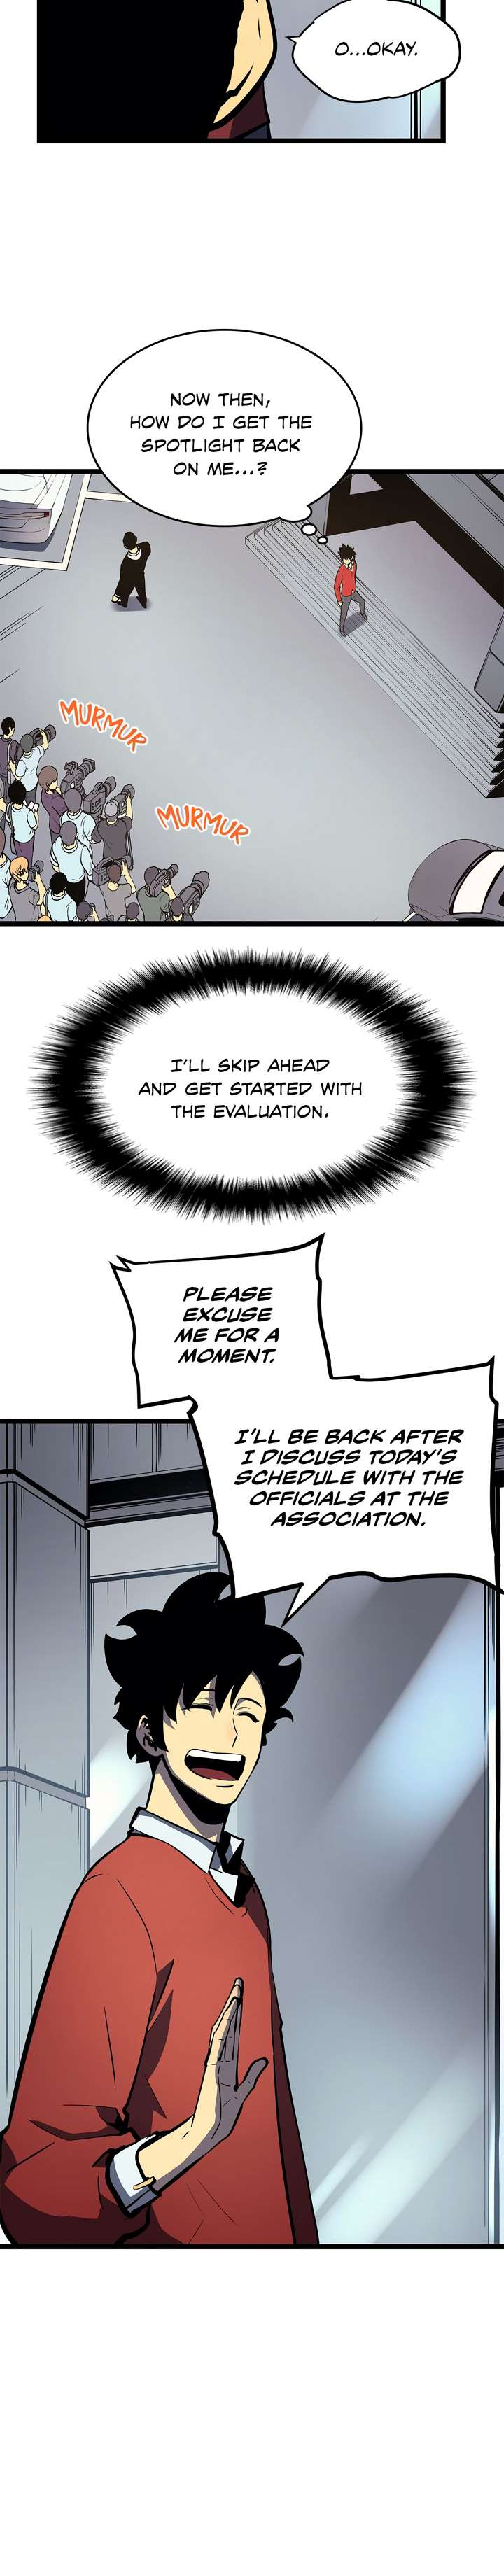 Solo Leveling Chapter 77 Page 6